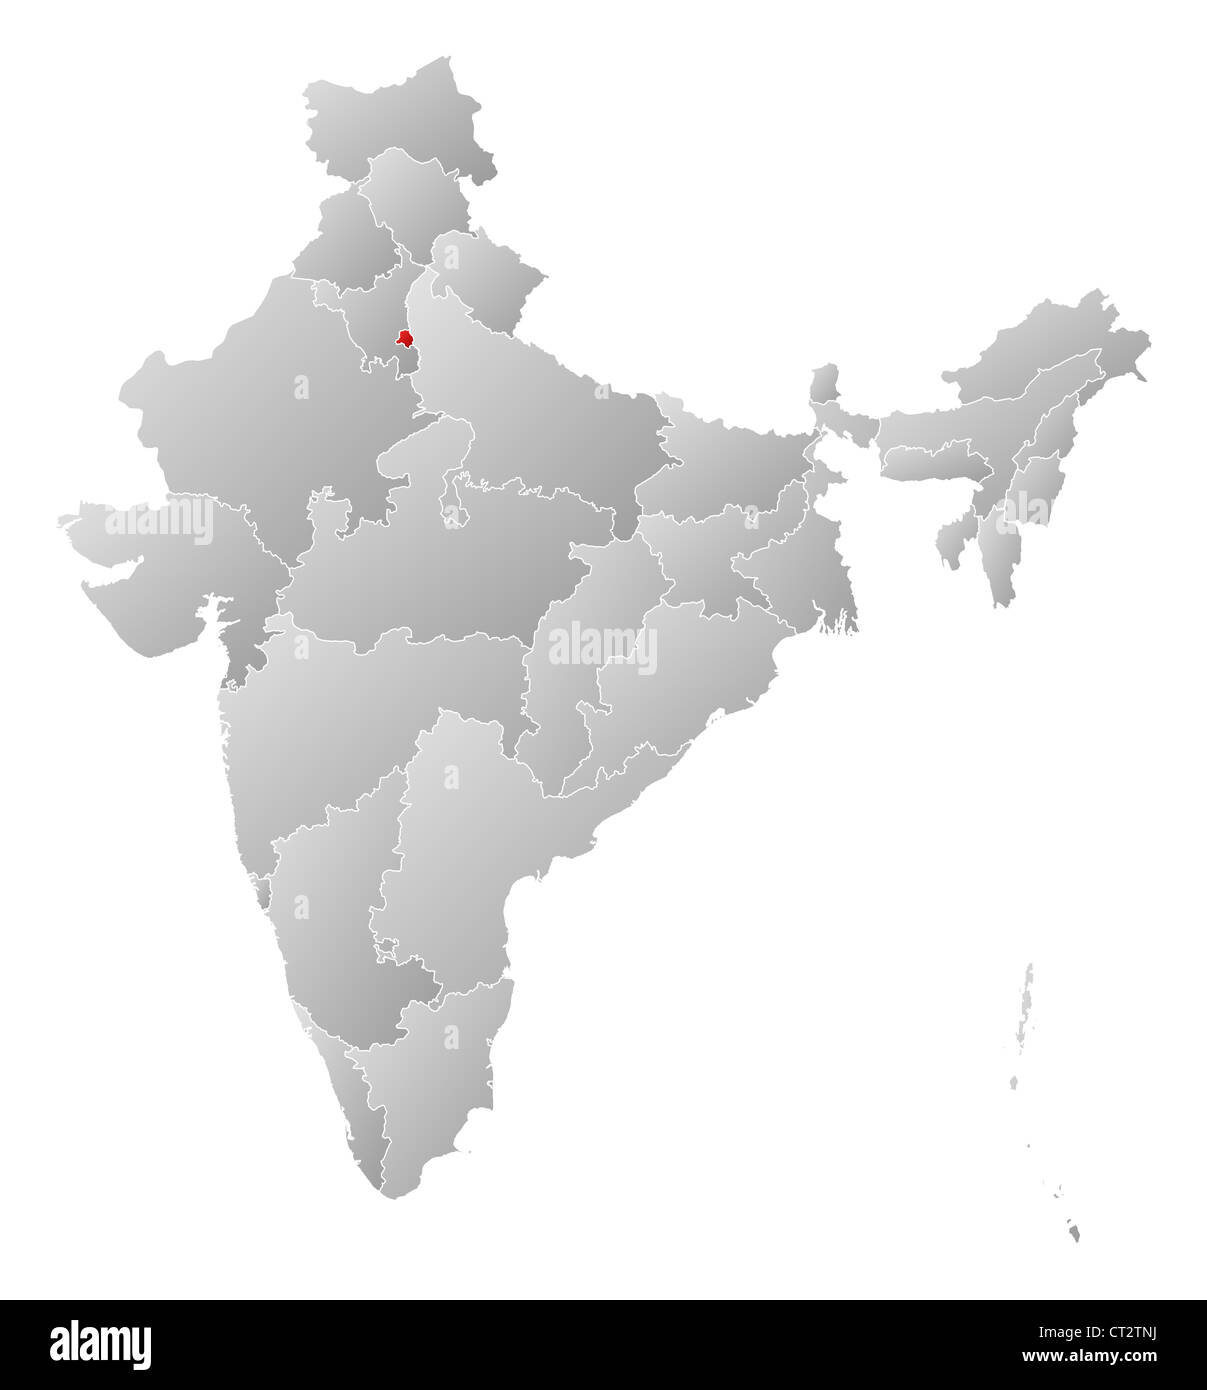 Political map of India with the several states where National Capital Region is highlighted. - Stock Image